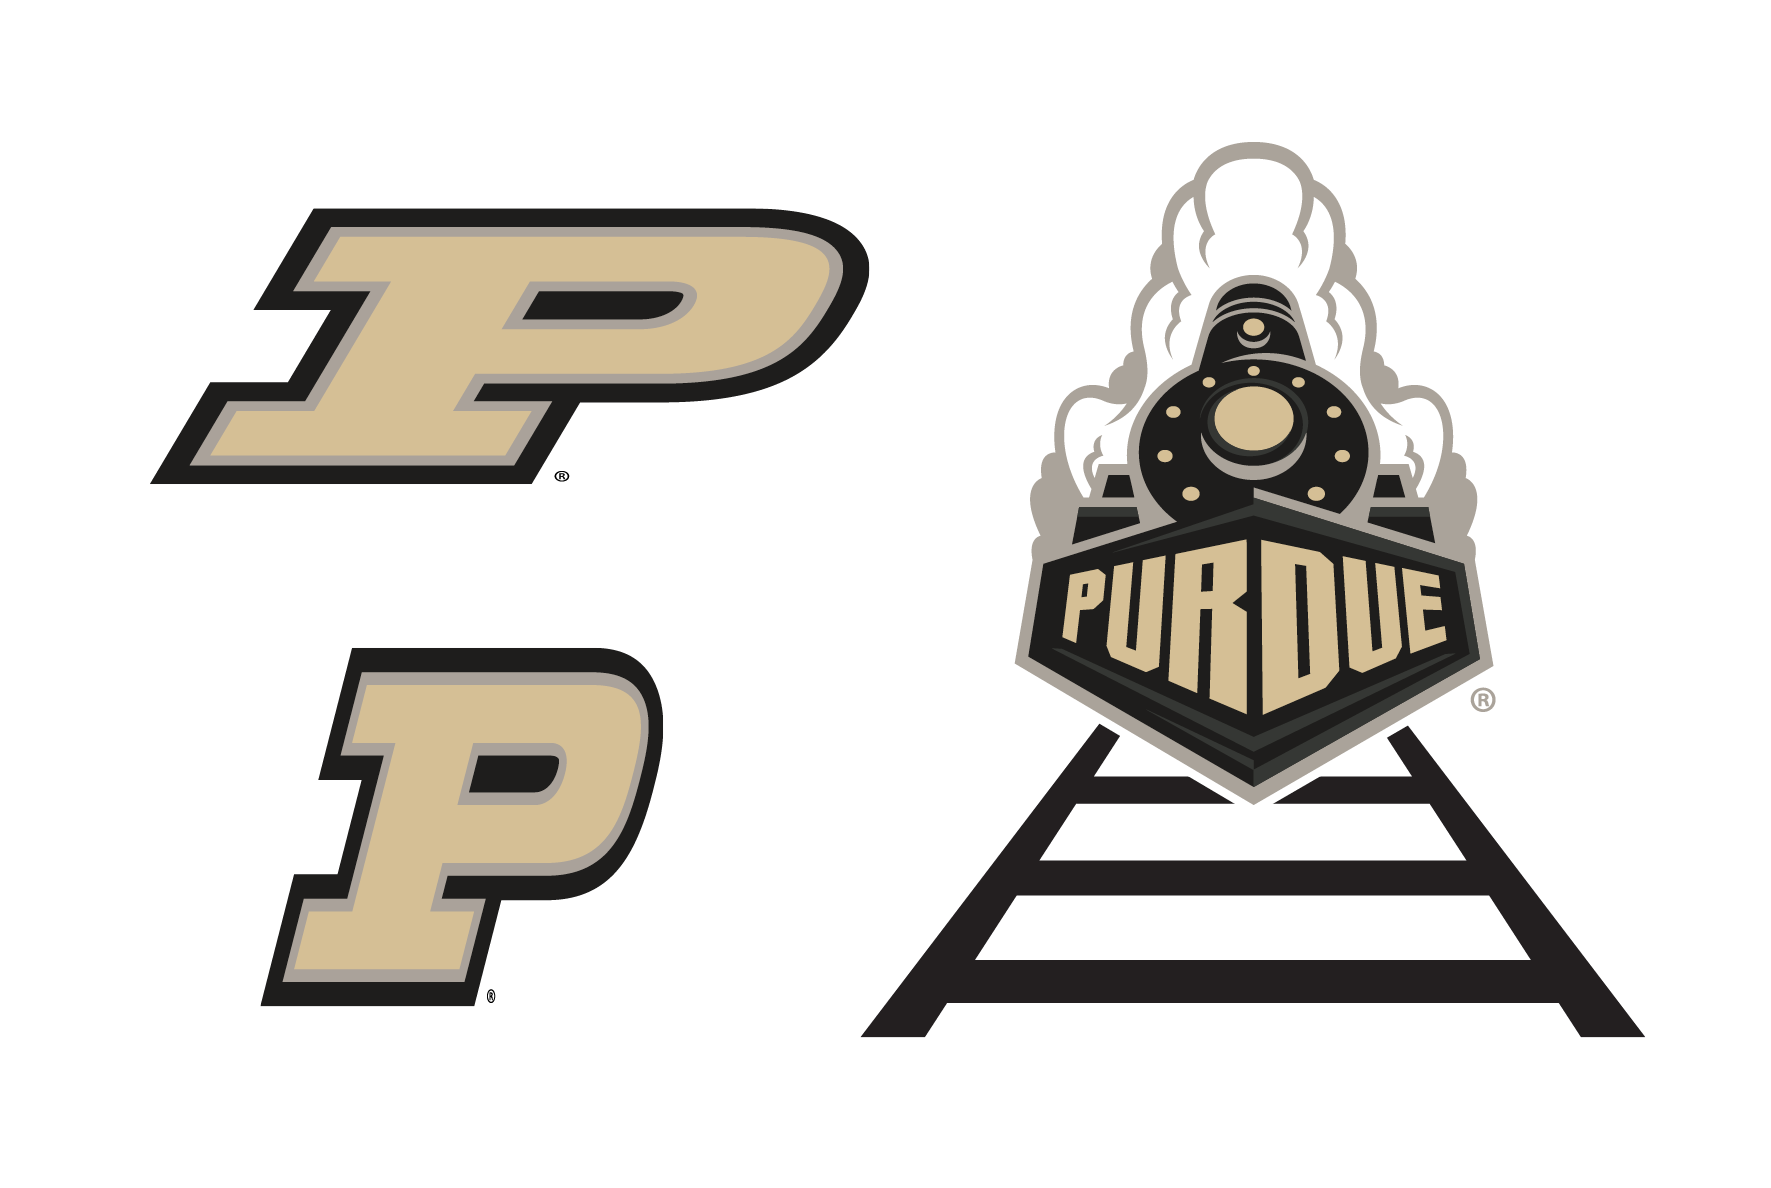 Purdue university logo clipart image freeuse download Athletic Logo Guidelines - Brand Toolkit - Purdue University image freeuse download